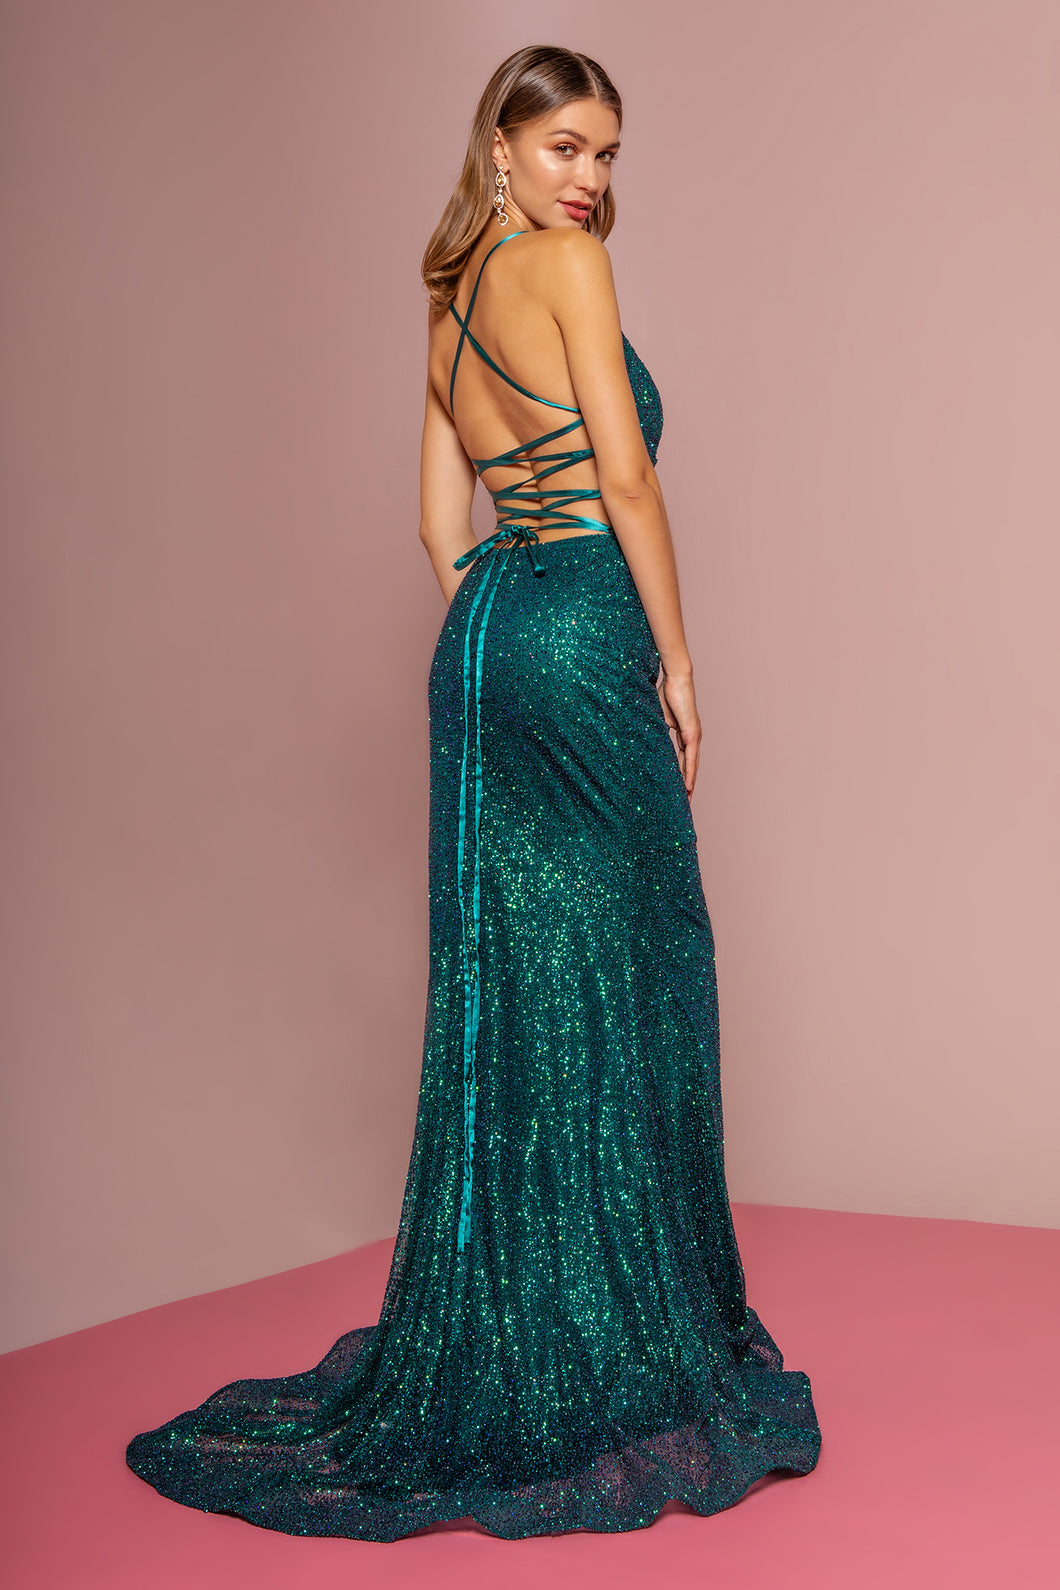 GL 2586 - Fit & Flare Glitter Prom Gown with Rouched Waist Leg Slit & Open Corset Back - Diggz Prom